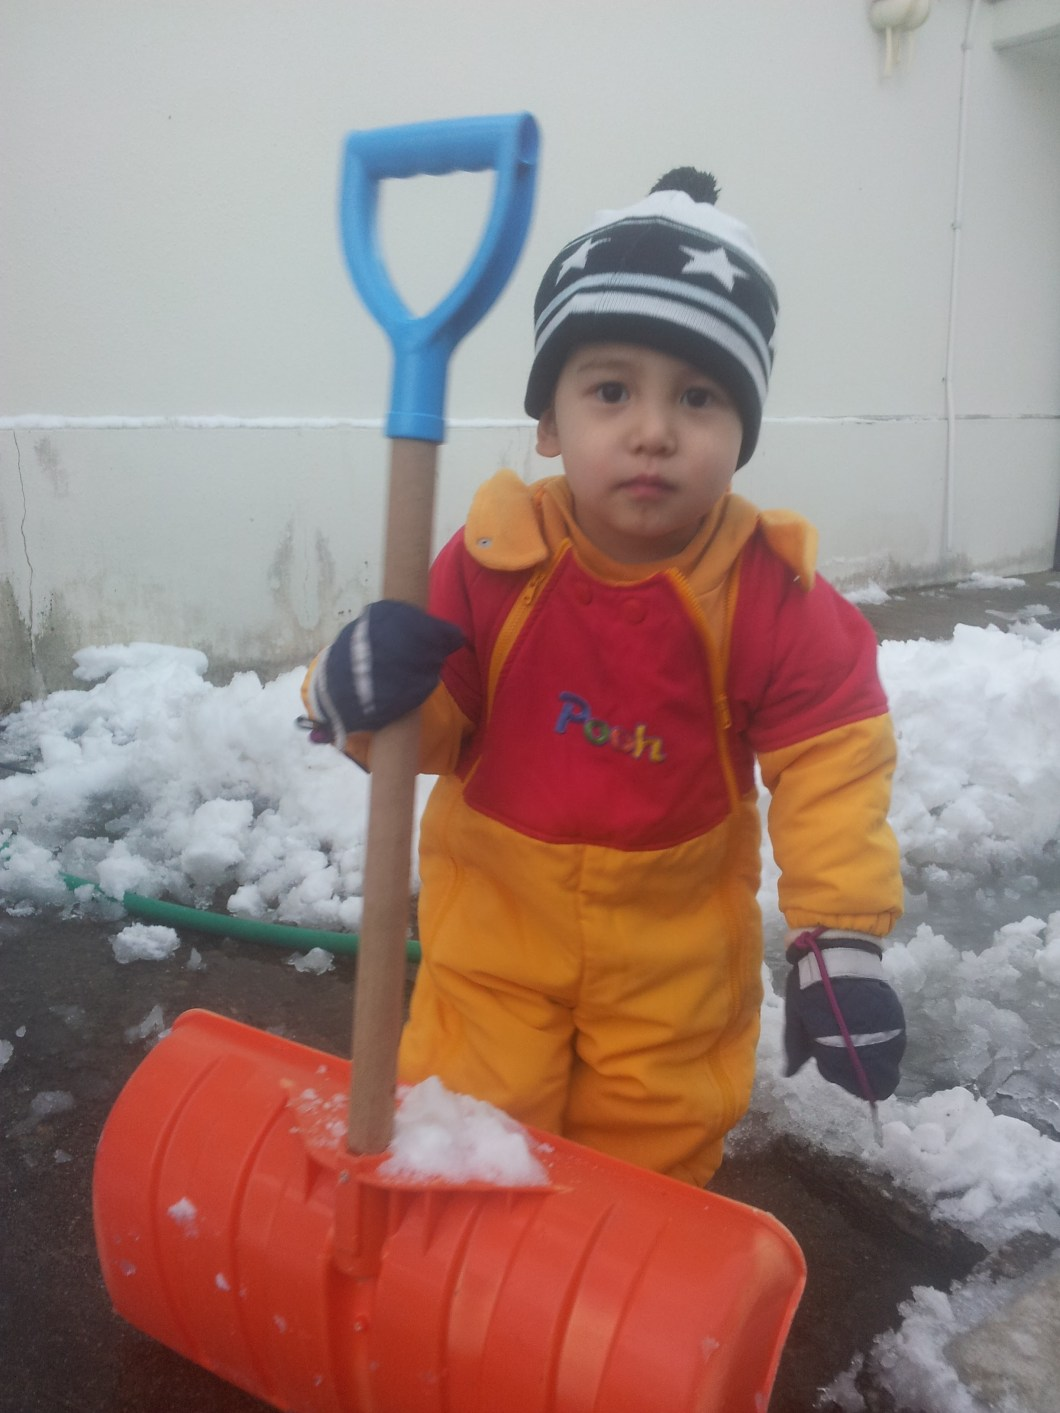 Little old men all over Snow Country keep fit by shovelling snow all winter long